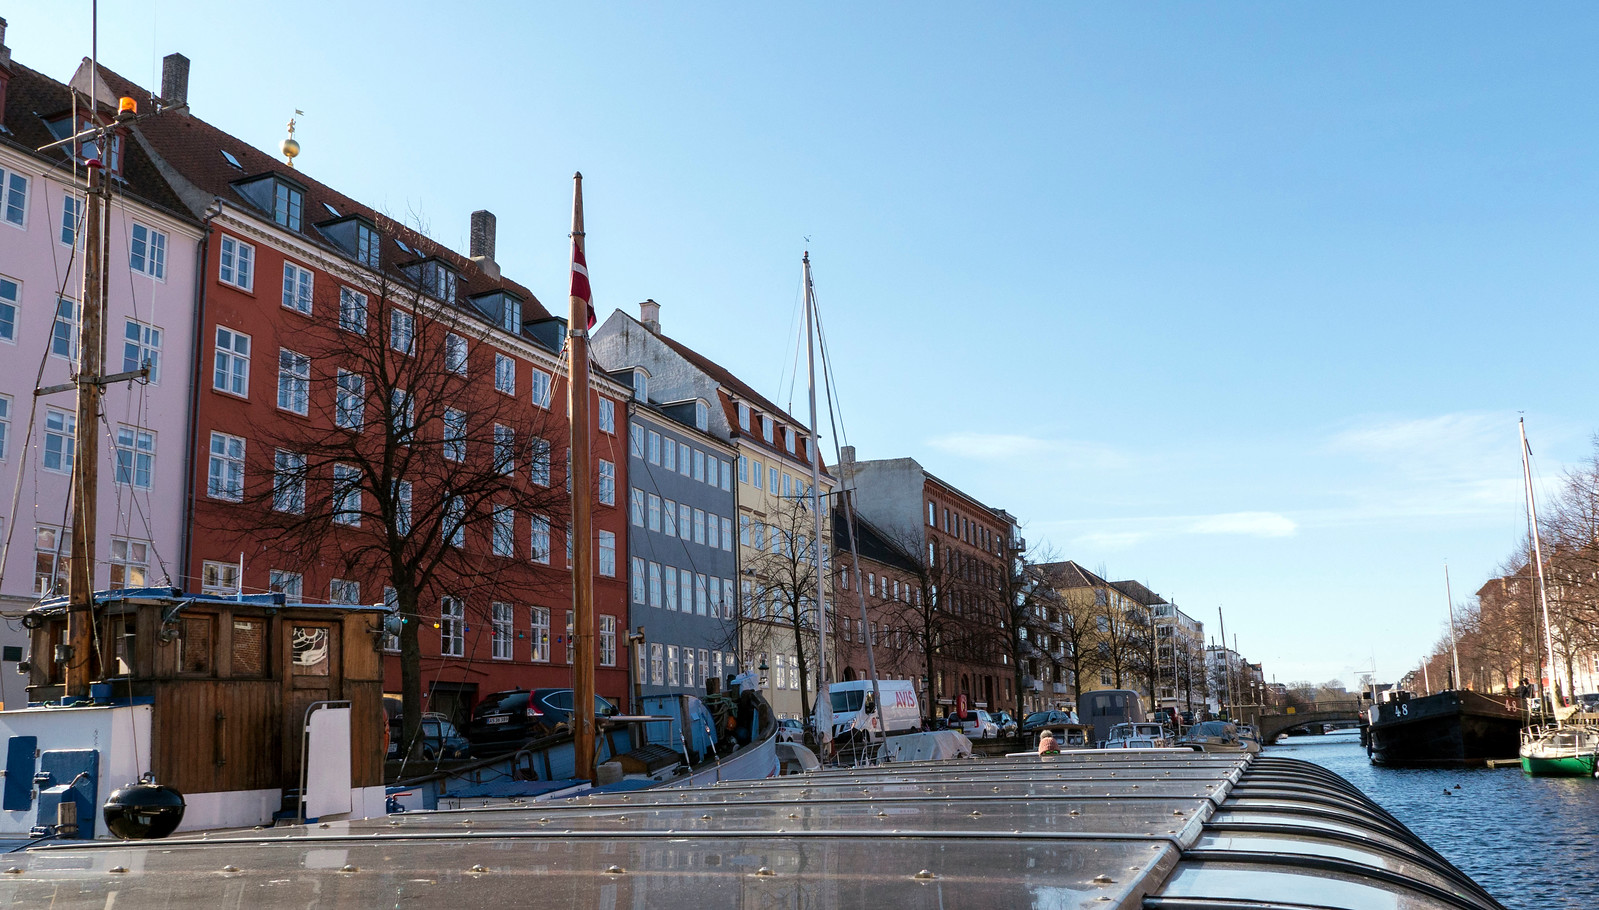 Copenhagen travel guide - Canal boat tour of Copenhagen